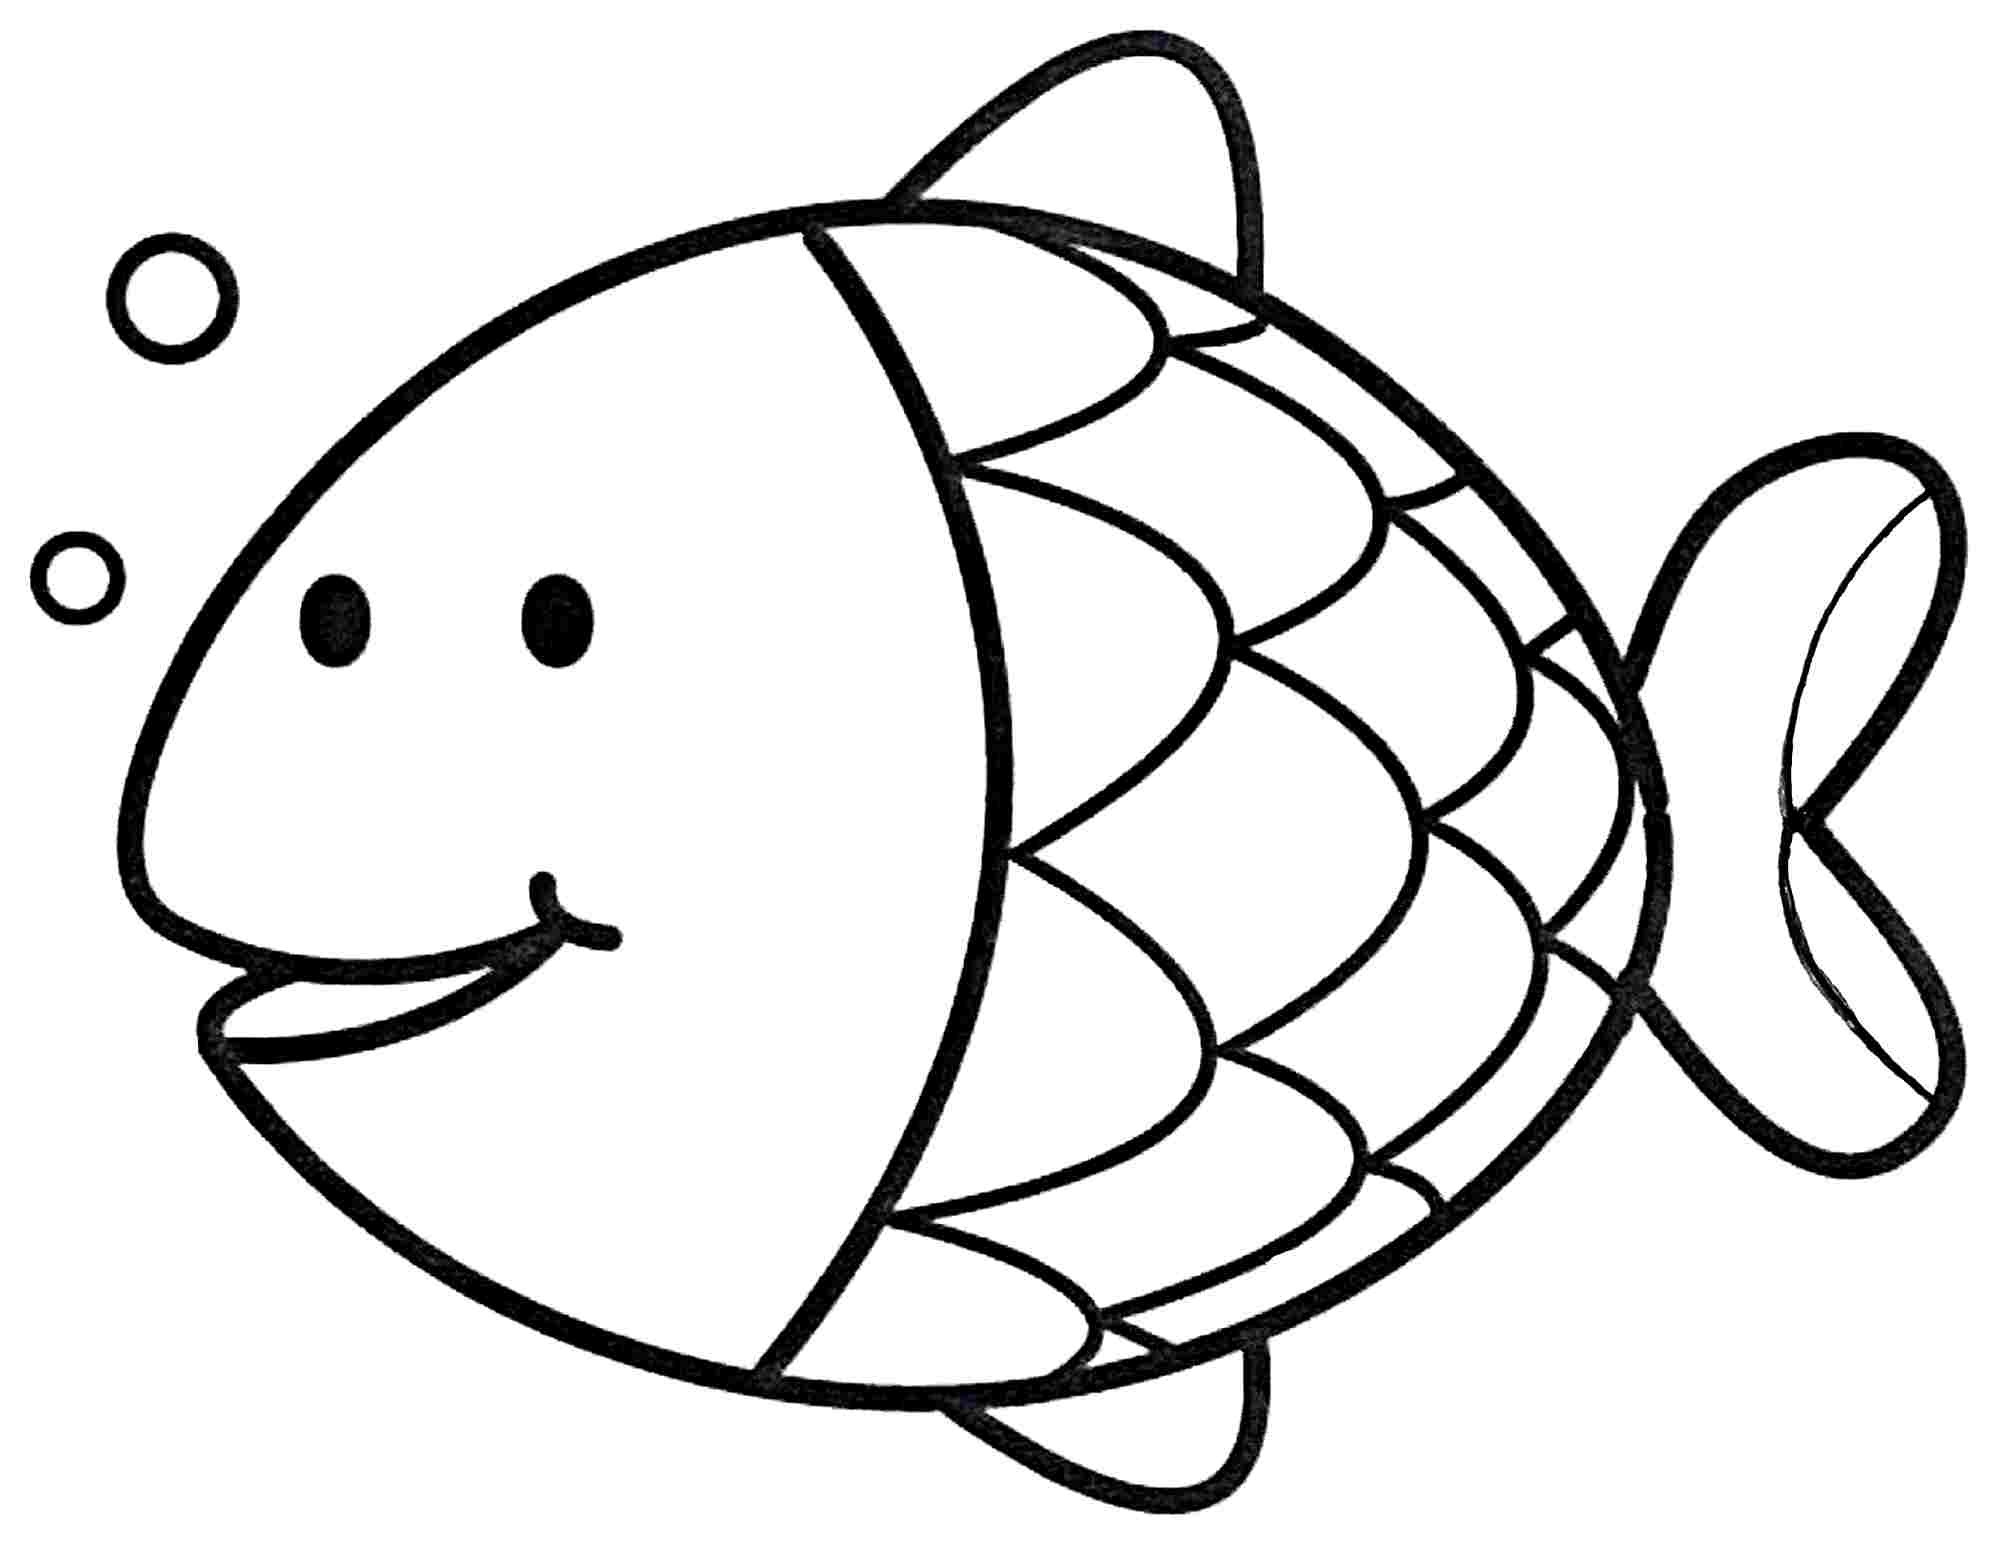 2000x1546 Fish Coloring Page Preschool Fishes Beauteous Pages For Wagashiya